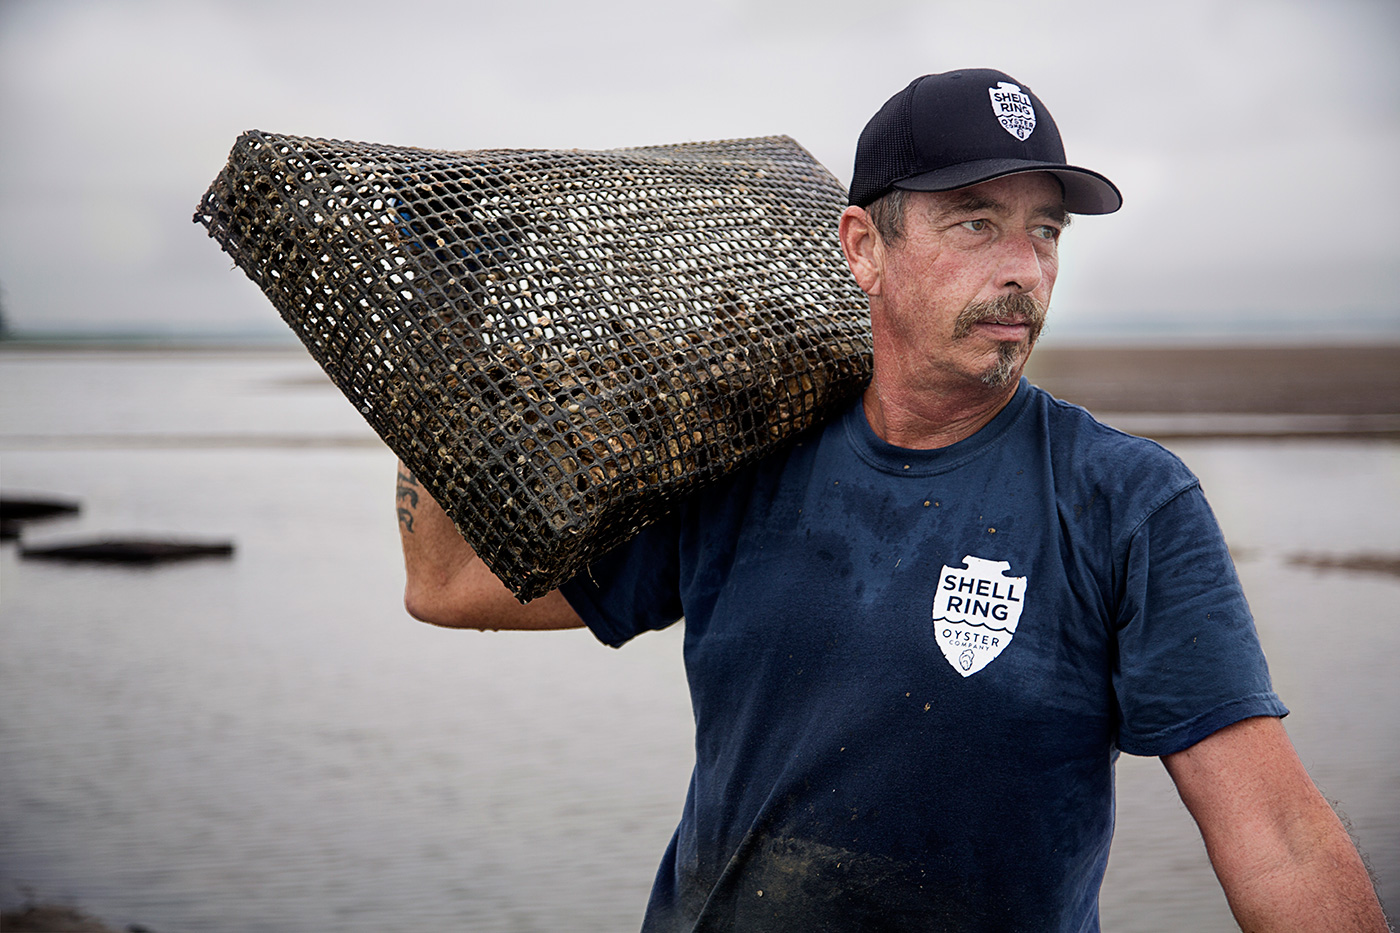 Editorial and portrait photography on location advertising oyster farmers.